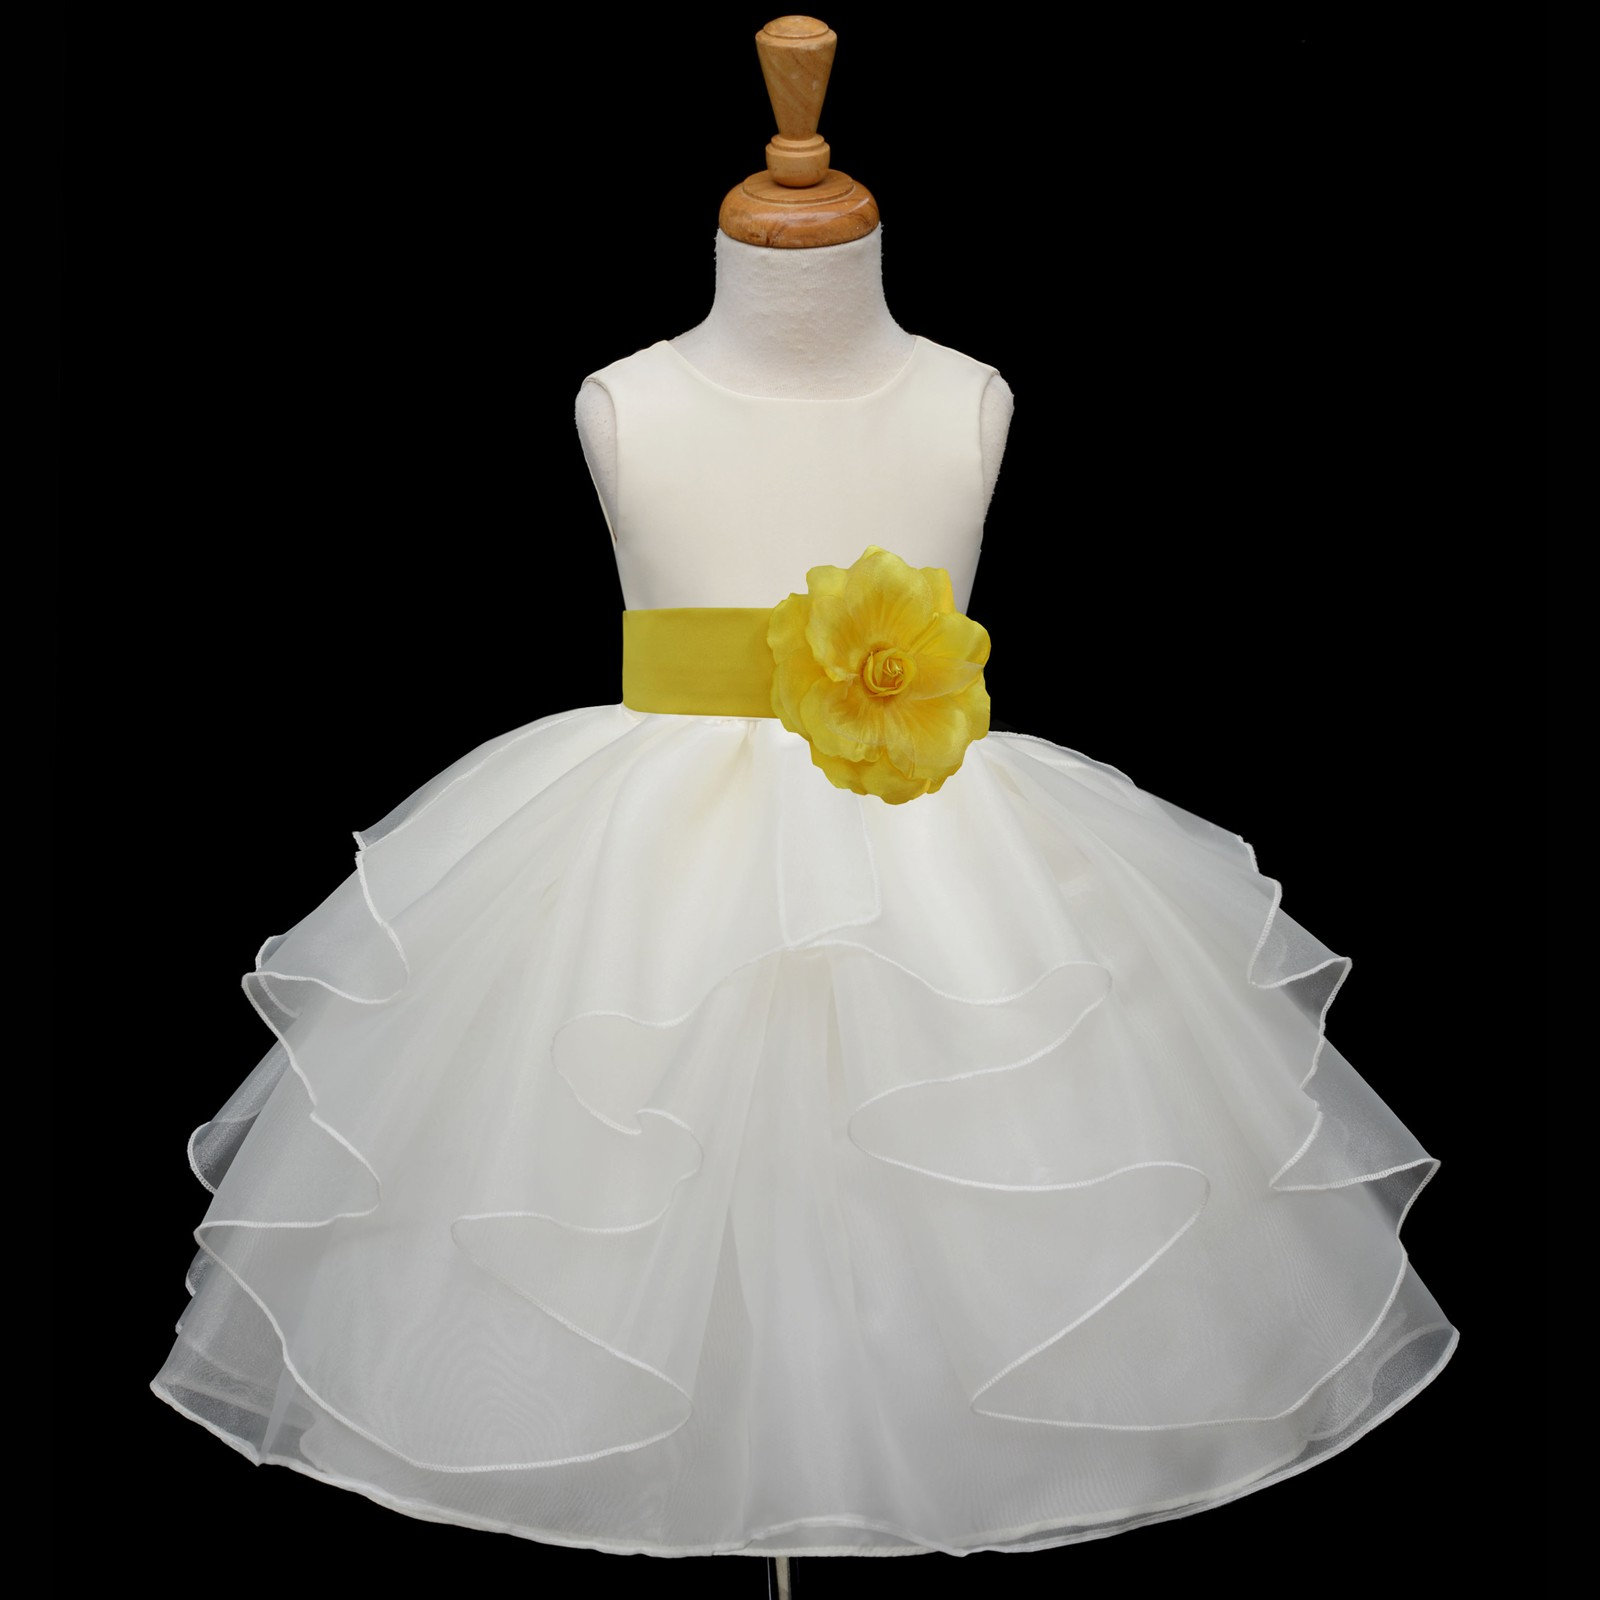 Ivorysunbeam Satin Shimmering Organza Flower Girl Dress Wedding